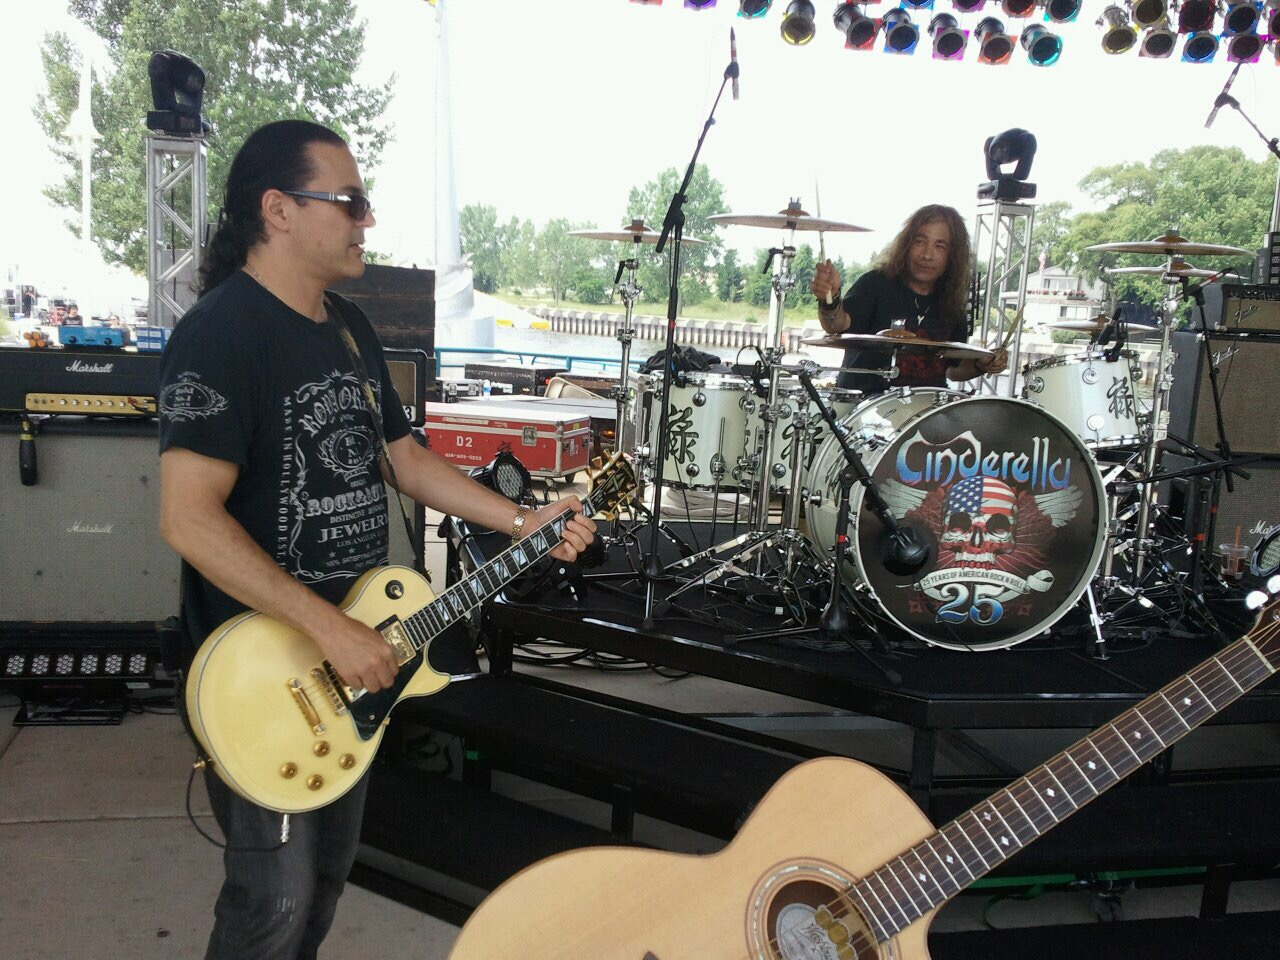 During soundcheck on the Cinderella 25th anniversary tour, we decided to switch instruments, and jam a little AC/DC. That's (Drummer) Fred Coury on guitar, and Gary Corbett playing the drums.